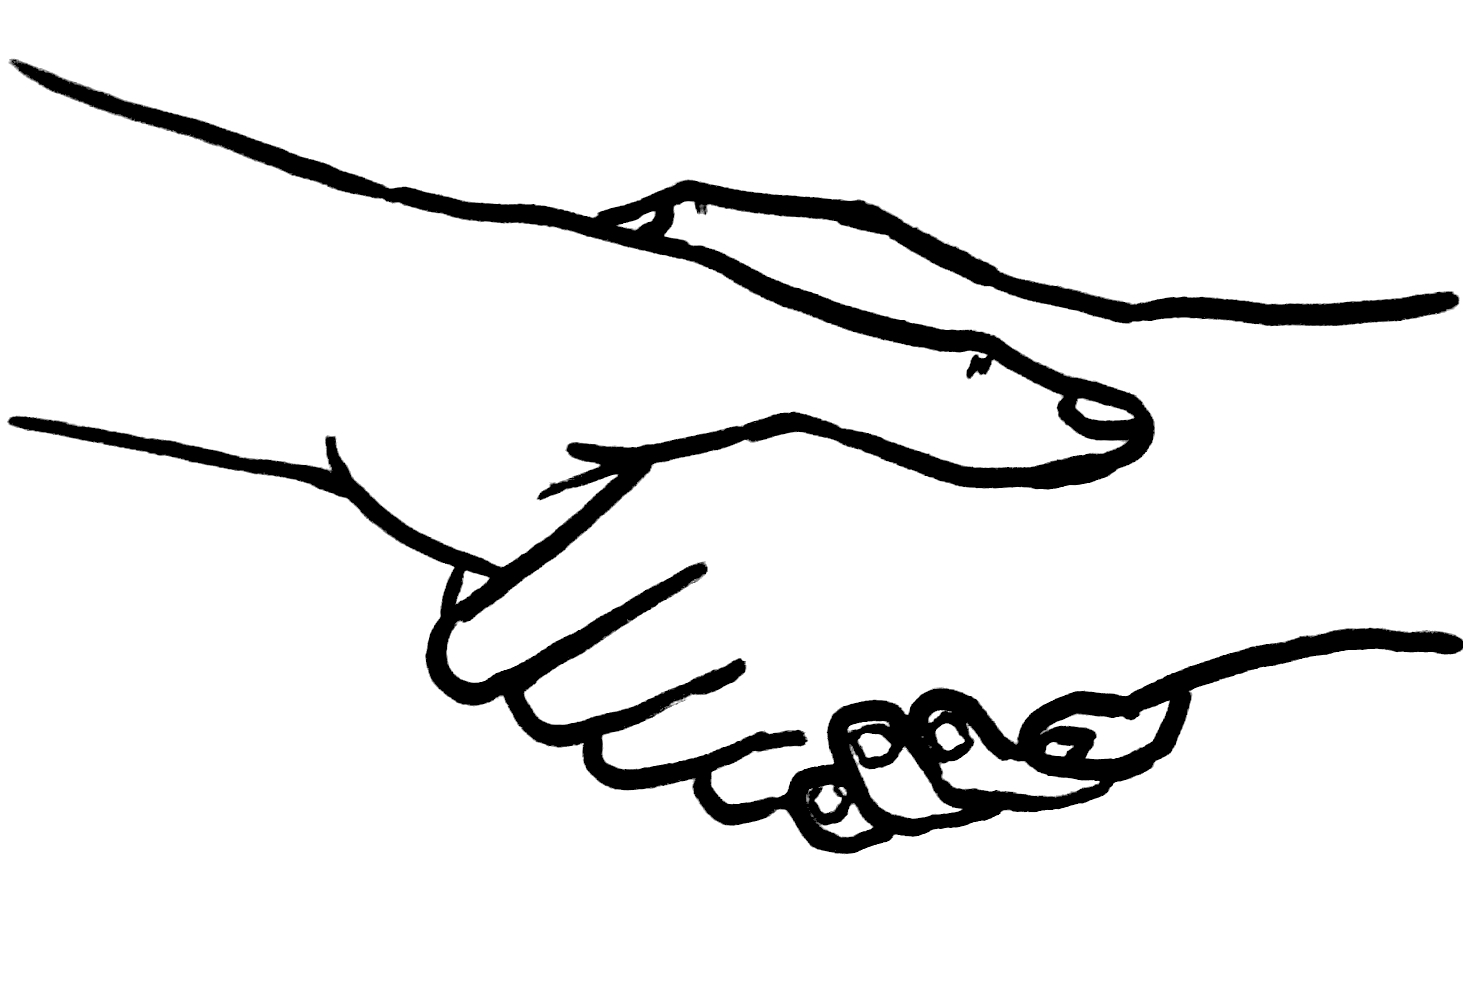 Free picture of hands. Handshake clipart two hand